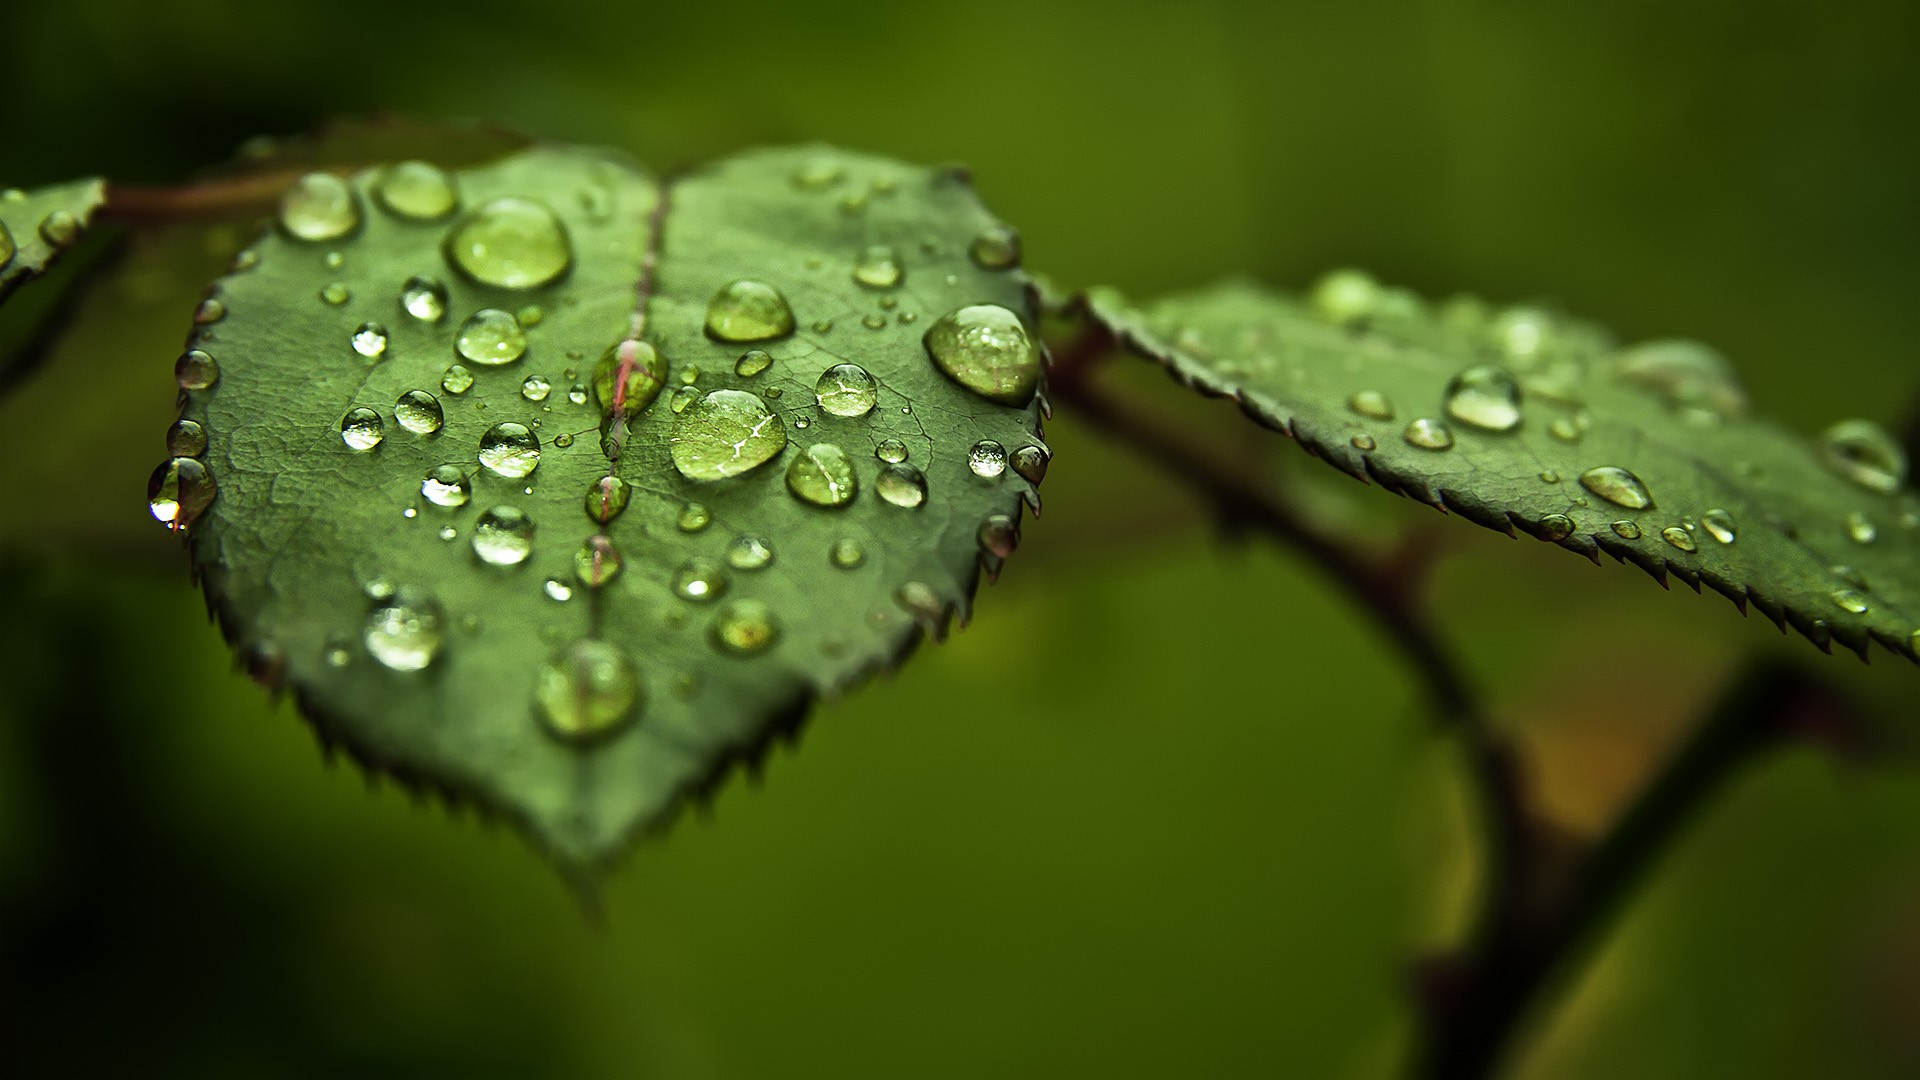 Water Drops on Leaves - Wallpaper #34667